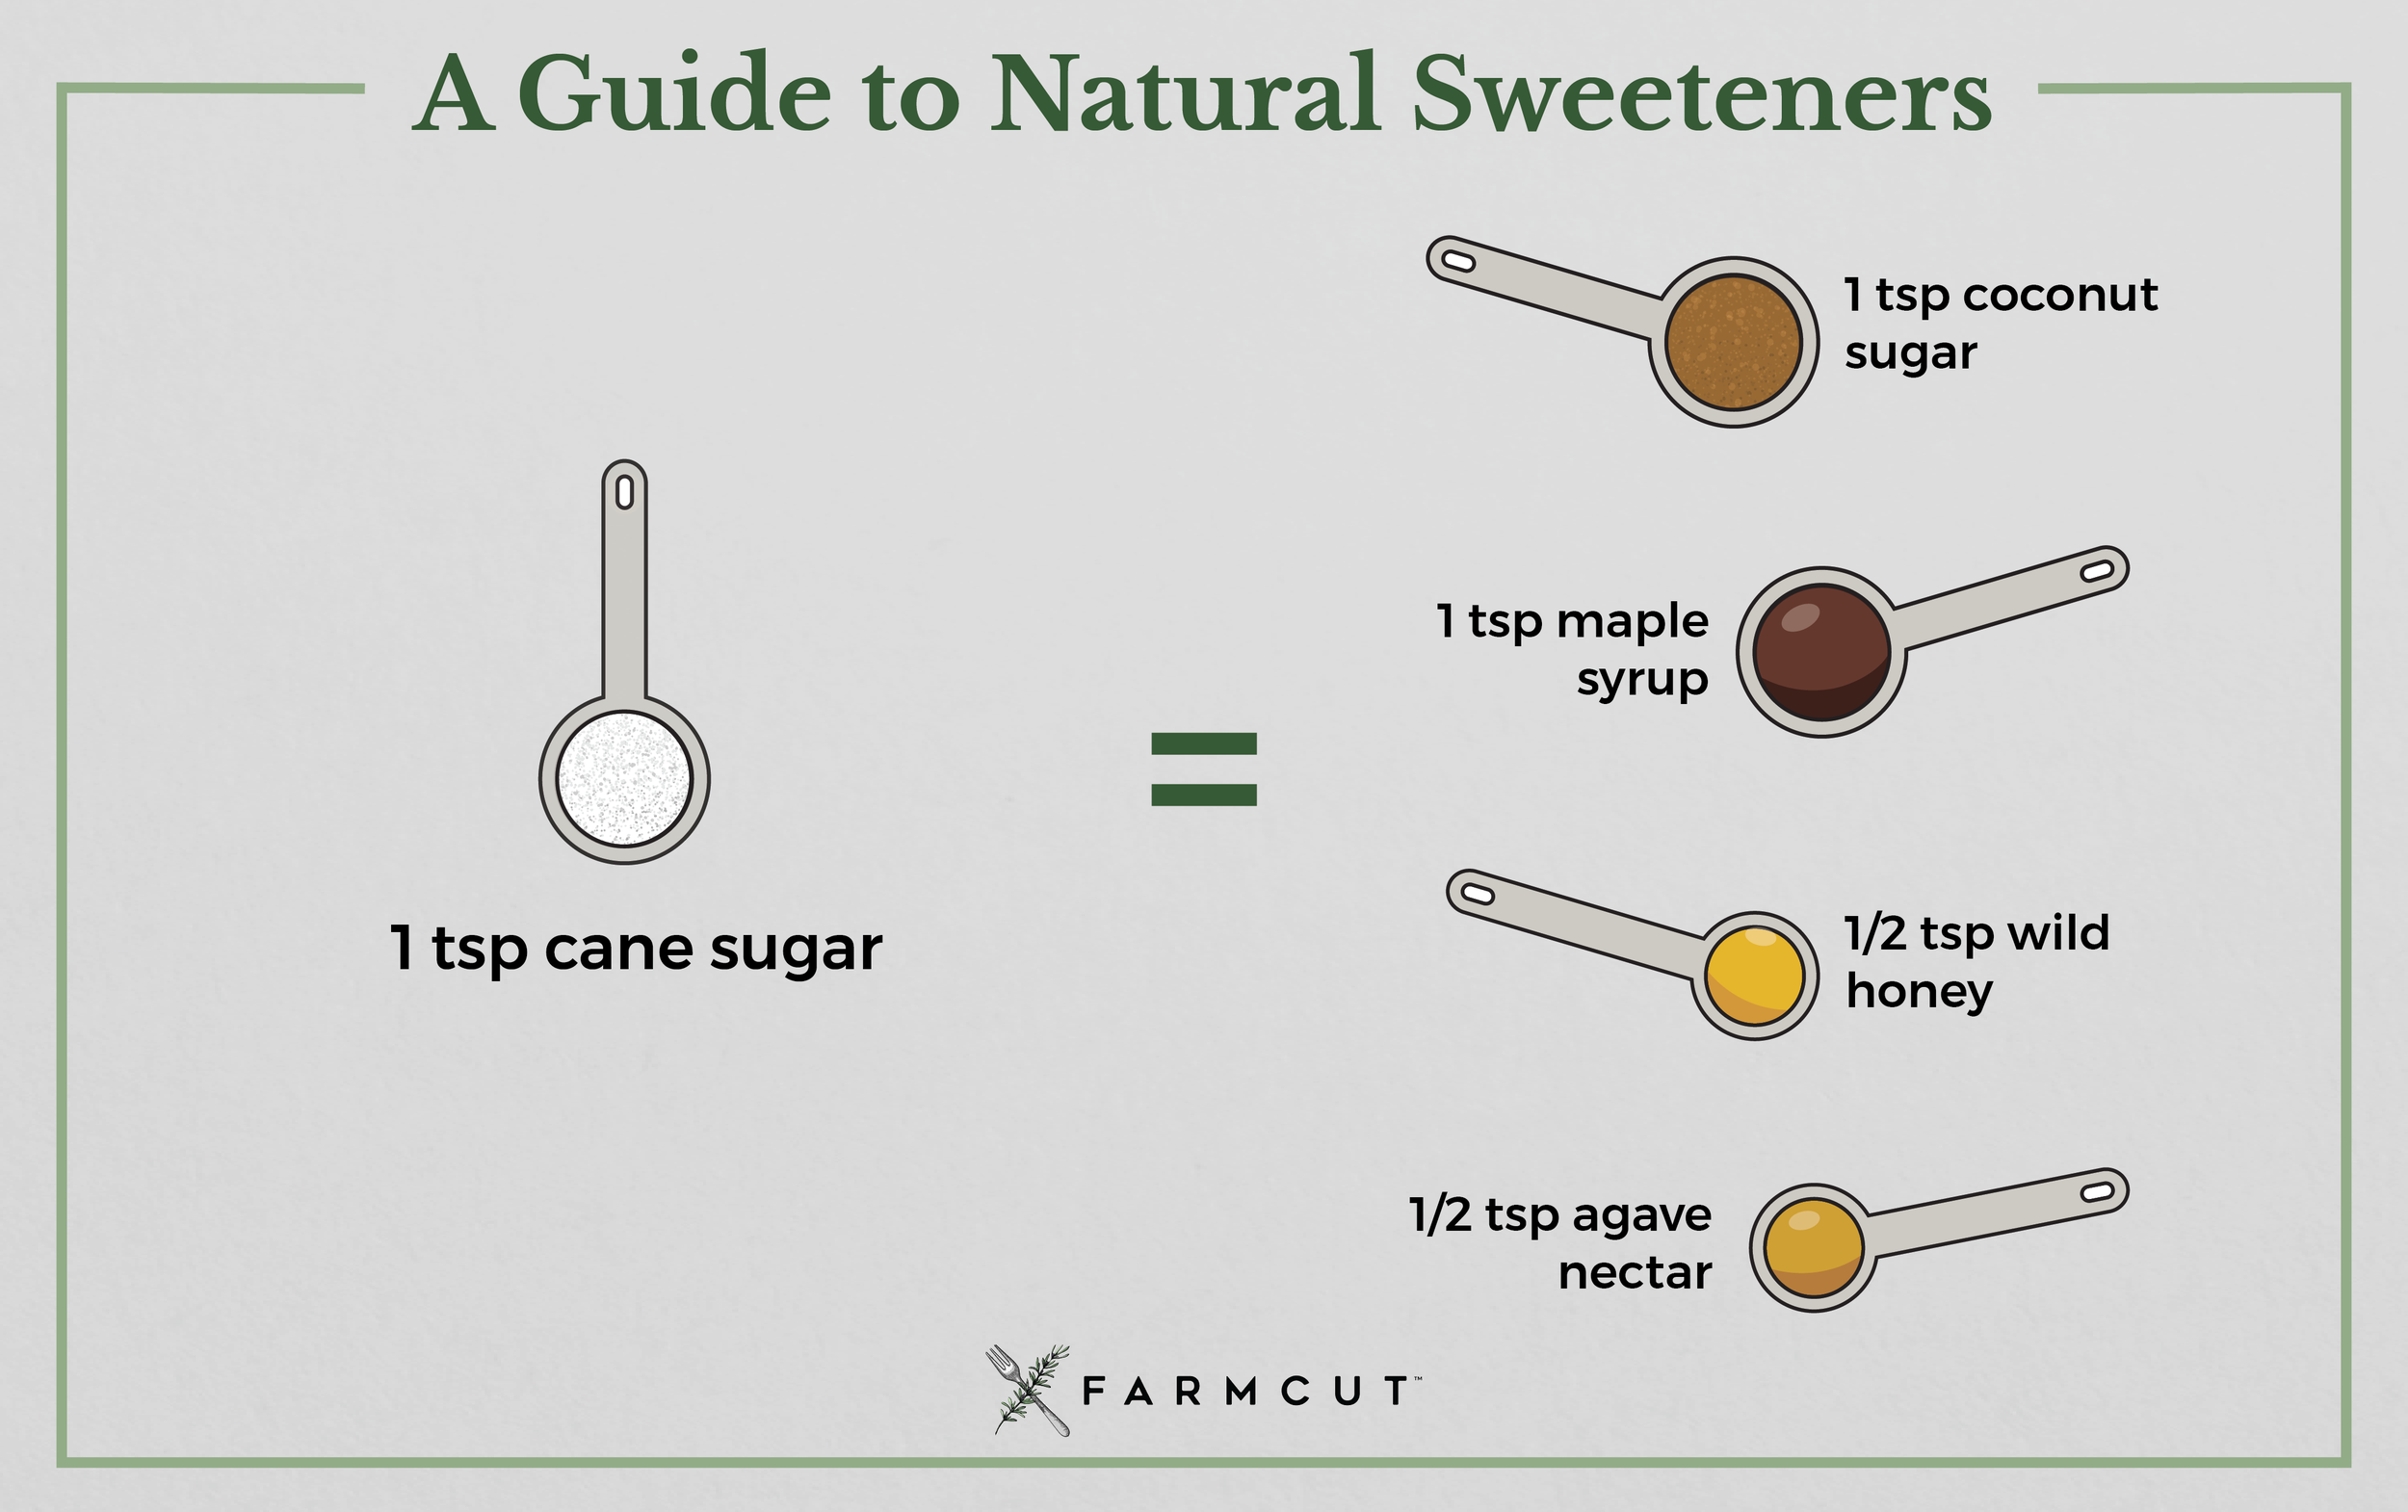 infographic of natural sweeteners. 1tsp of cane sugar equals 1 tsp of coconut sugar, 1 tsp maple syrup, 1/2 tsp wile honey, 1/2 tsp agave nectar.